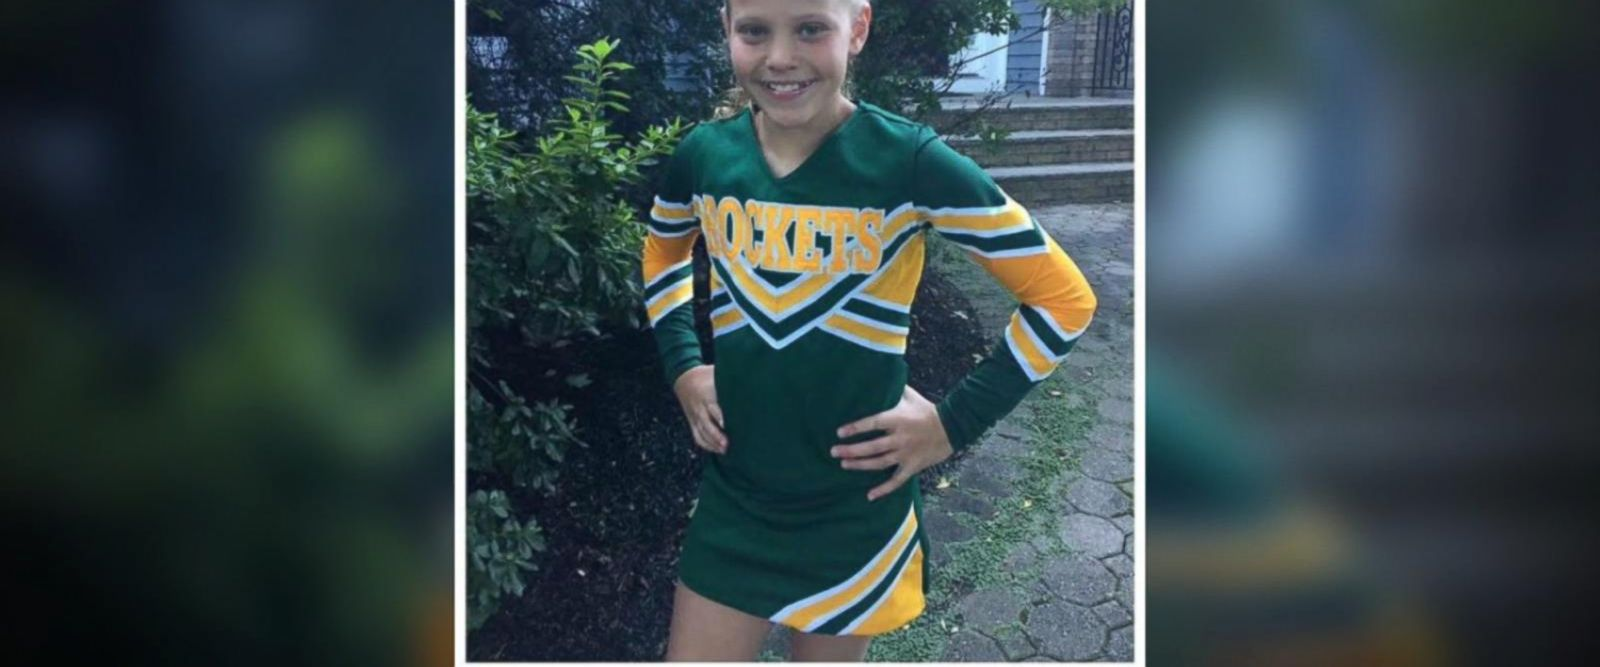 VIDEO: Parents sue school district over 12-year-old daughter's suicide